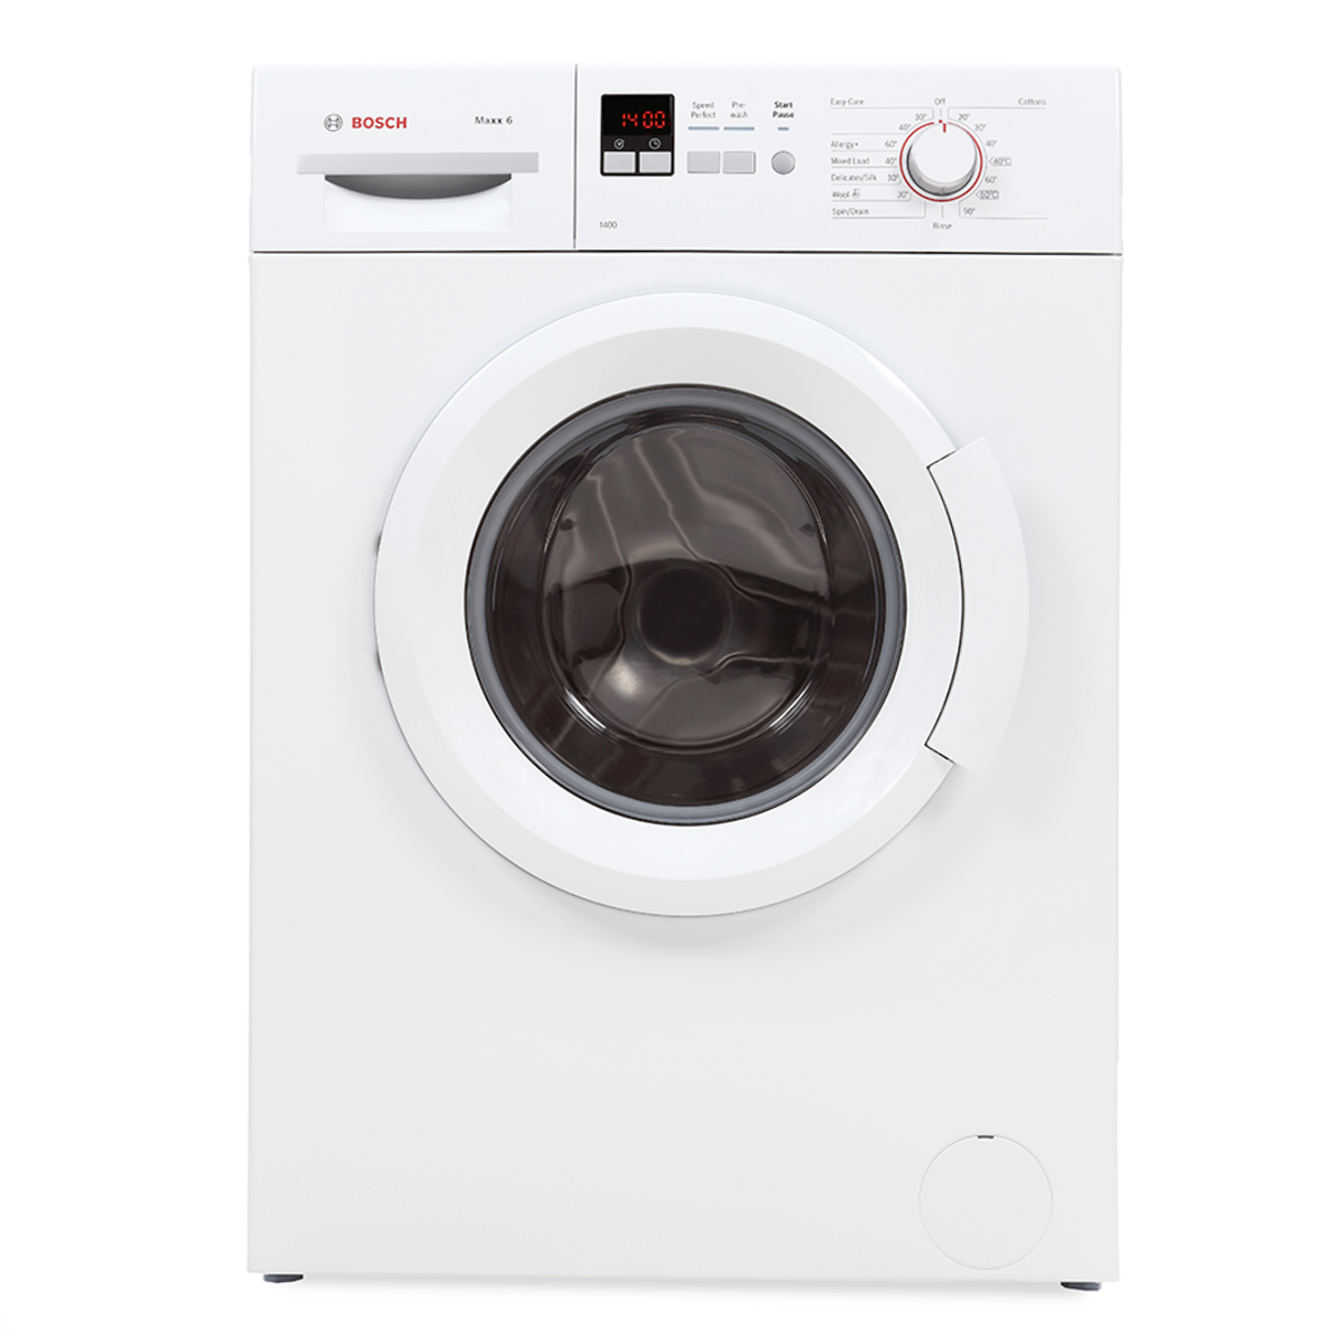 Buy Bosch Maxx 6 Wab28162gb Washing Machine Wab28162gb